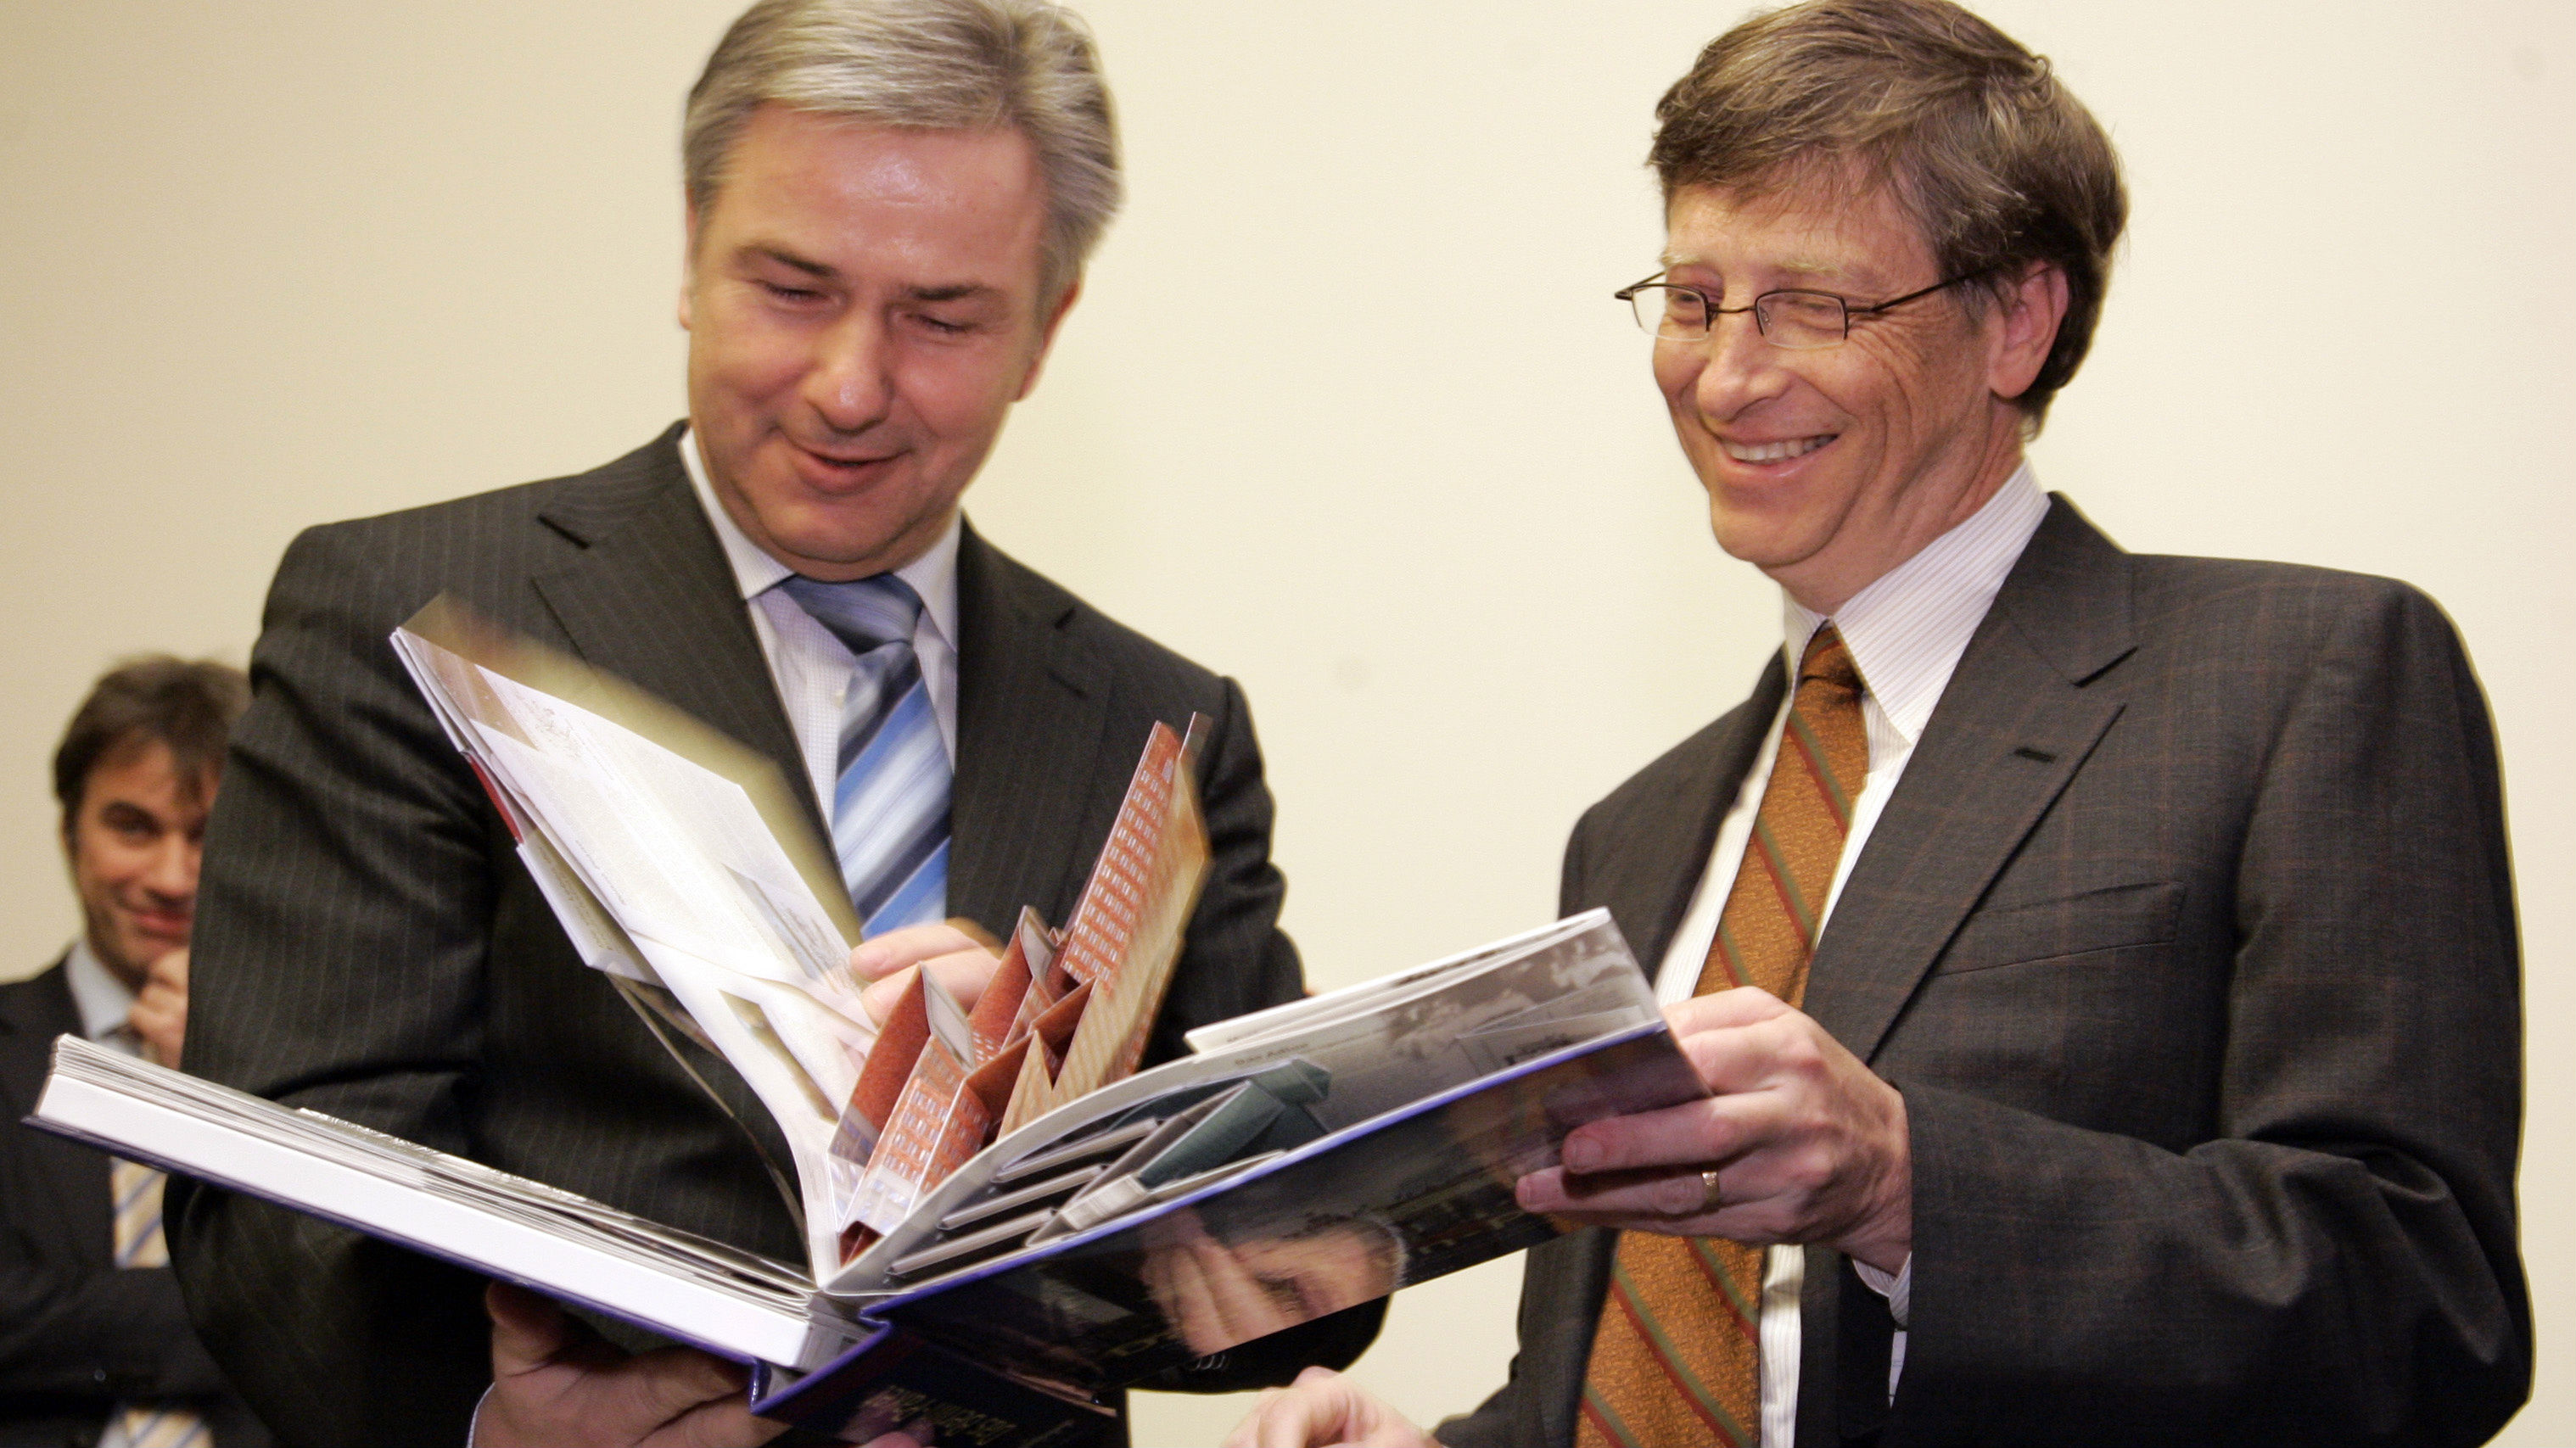 Berlin mayor Klaus Wowereit, left, and Microsoft founder Bill Gates, right, take a look at book about Berlin after Gates signed the Golden guest book of the City of Berlin in the Red City Hall in Berlin on Tuesday, Jan. 22, 2008. (AP Photo/Miguel Villagran)